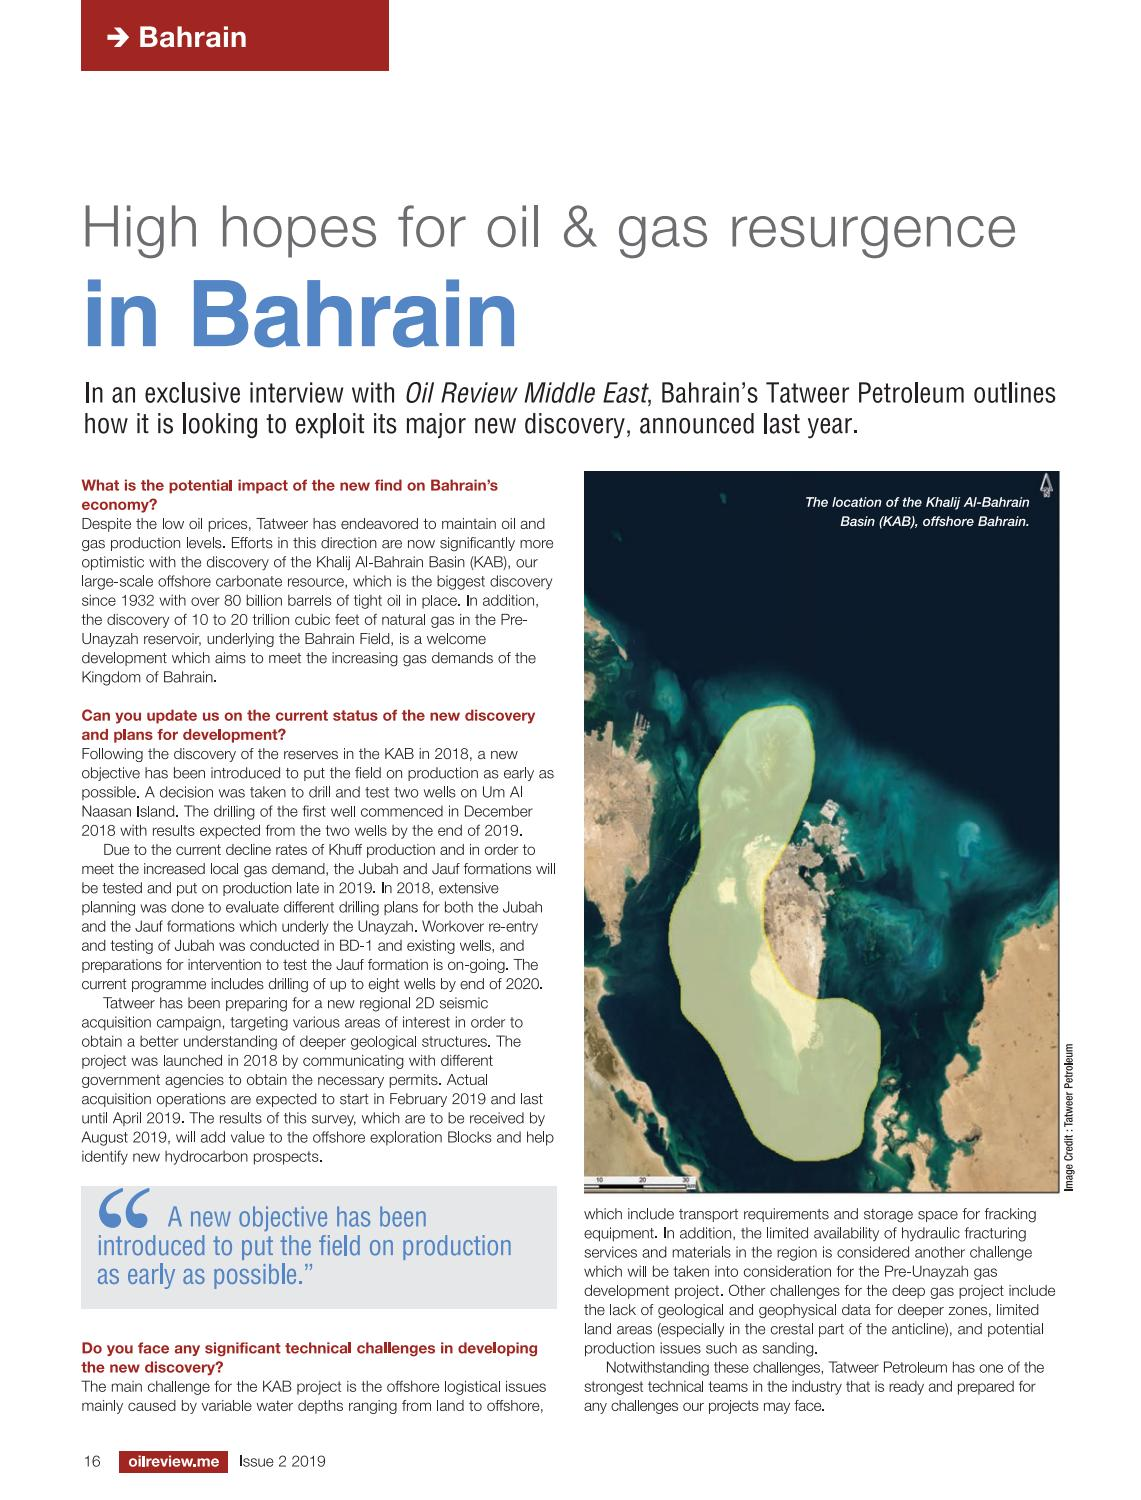 Oil Review Middle East Issue 2 2019